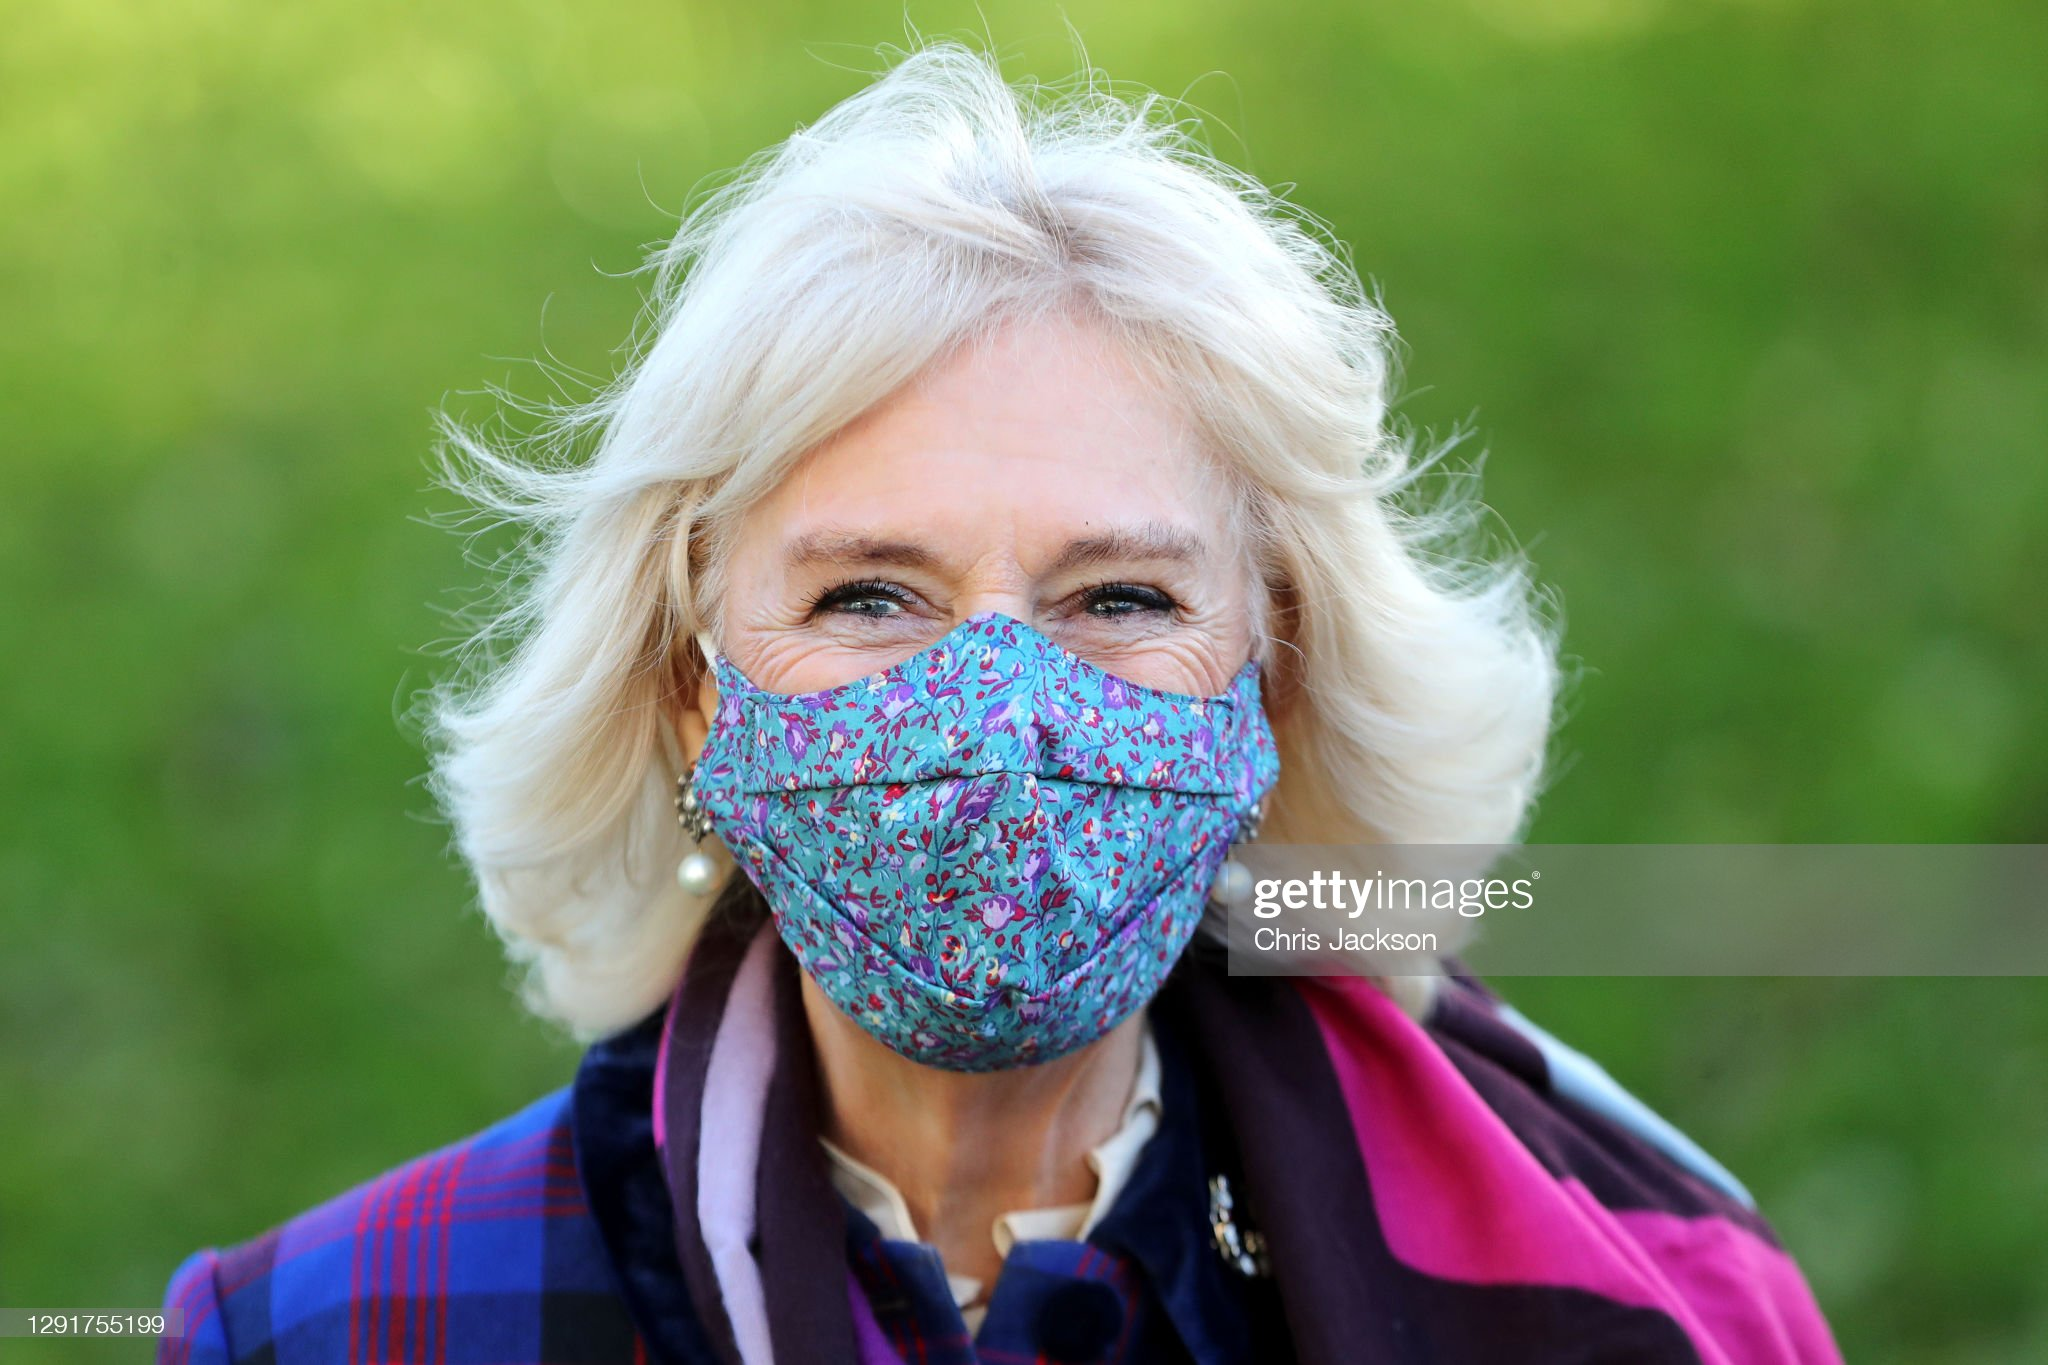 camilla-duchess-of-cornwall-during-a-visit-to-gloucestershire-centre-picture-id1291755199